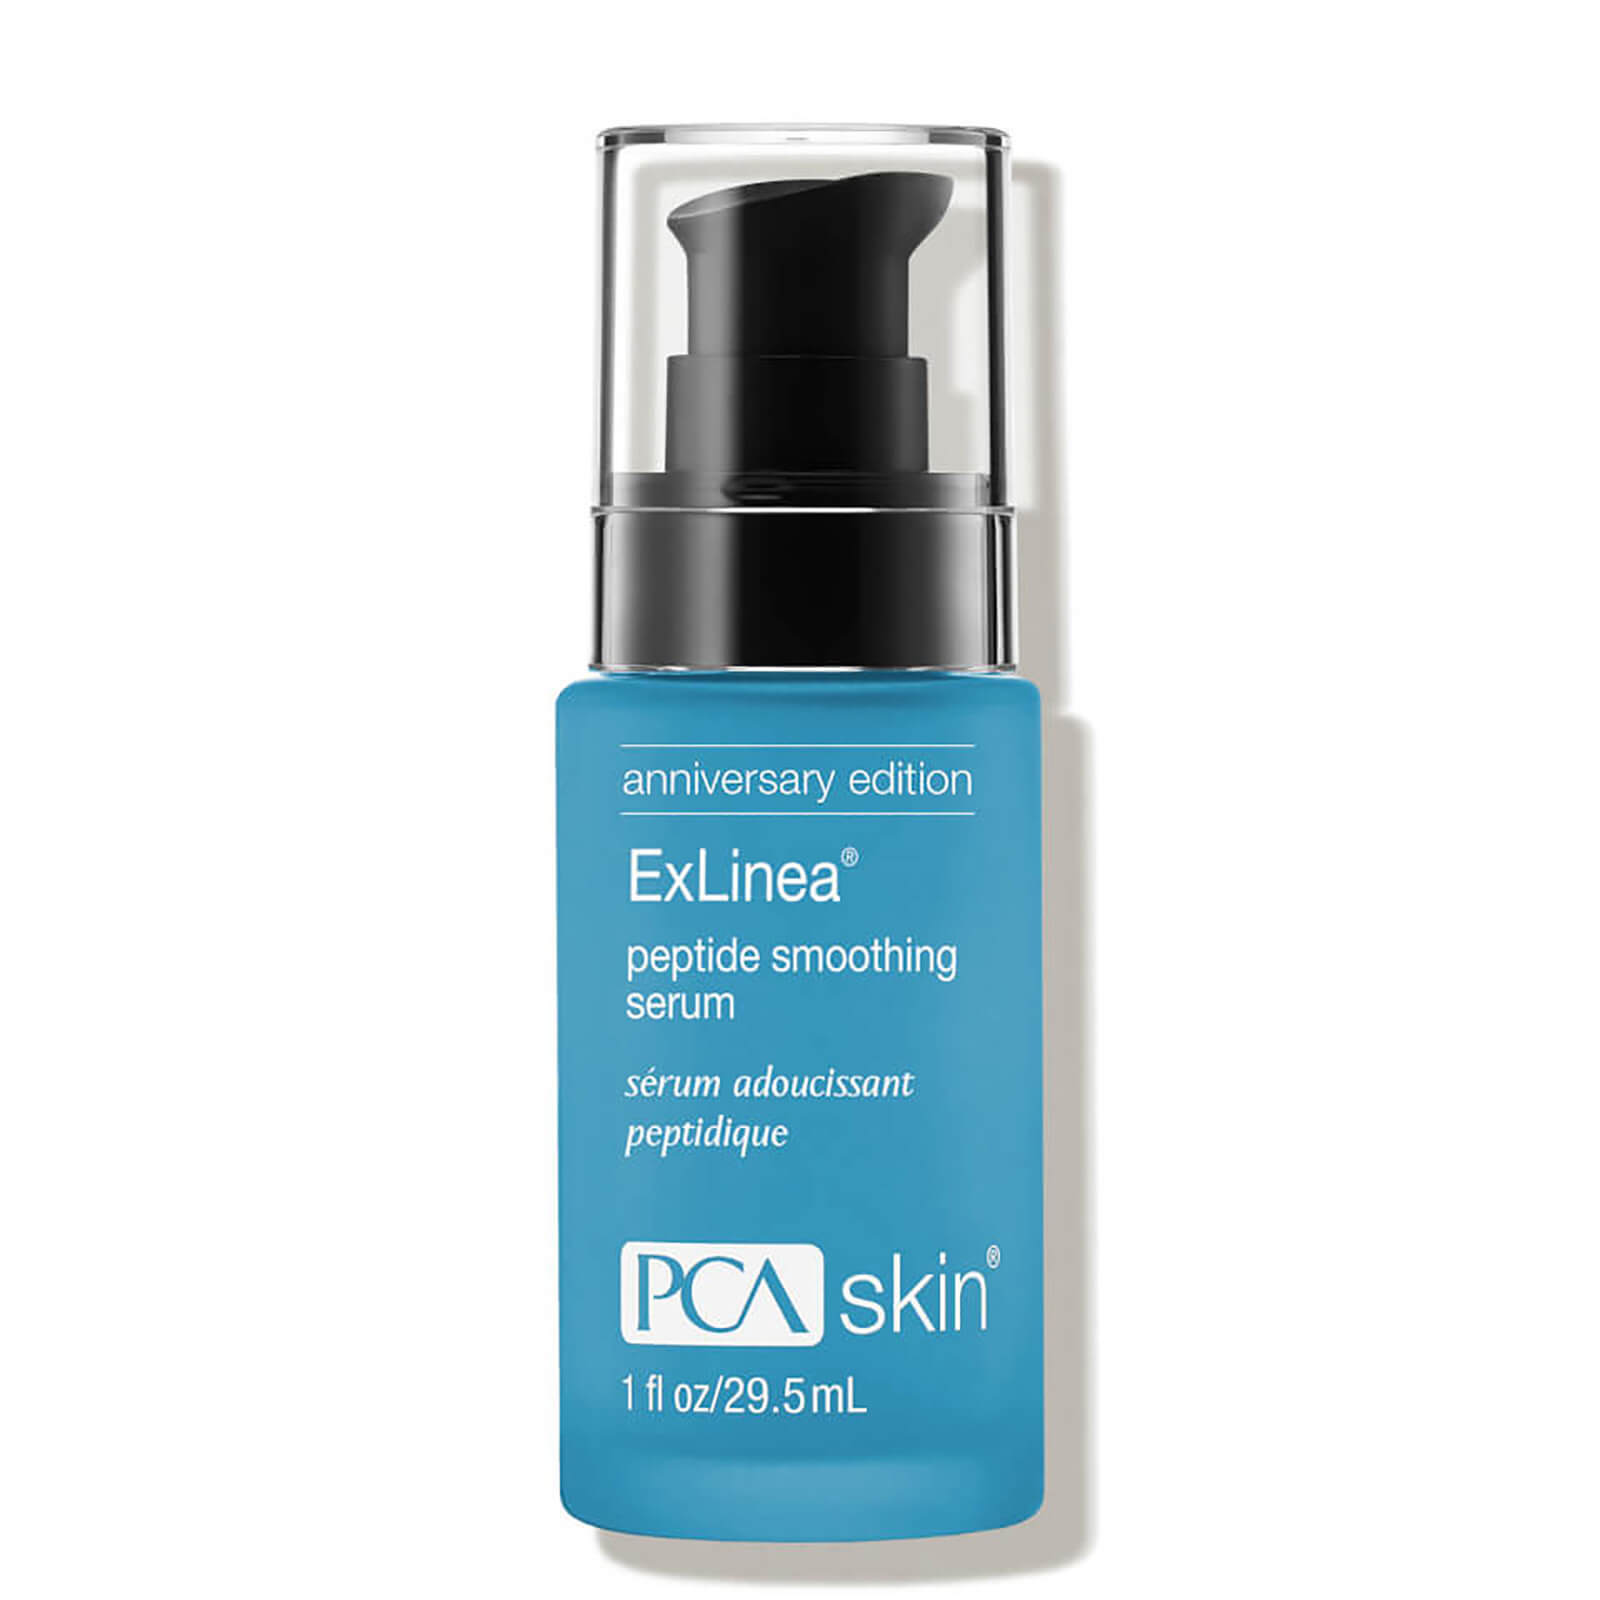 Watch a story about PCA SKIN EXLINEA PEPTIDE SMOOTHING SERUM